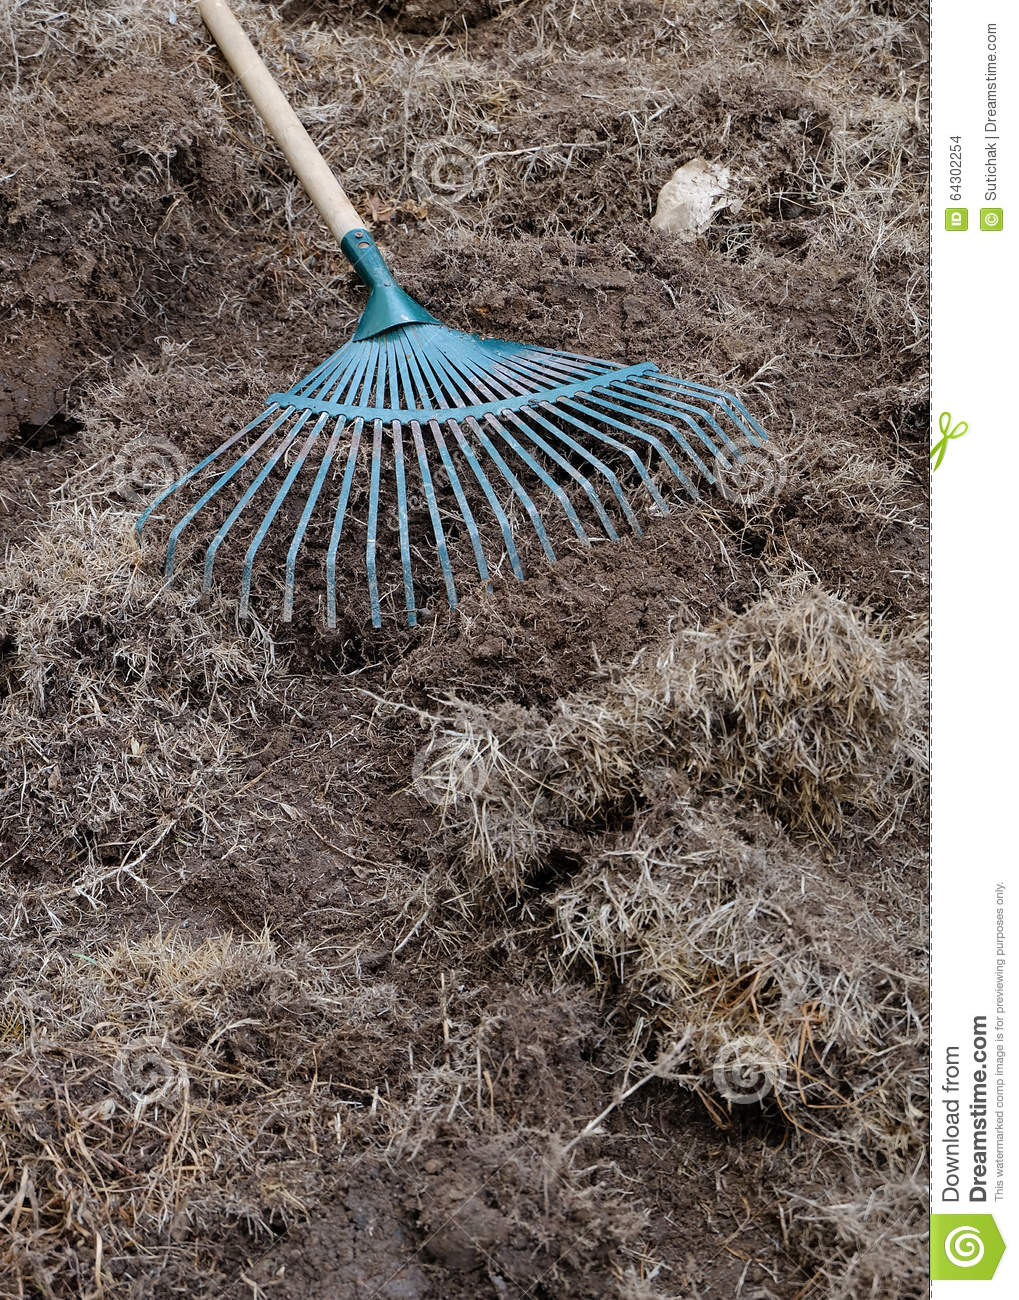 Yard work preparation soil in garden with rake stock photo image 64302254 - Gardening works in october winter preparations ...